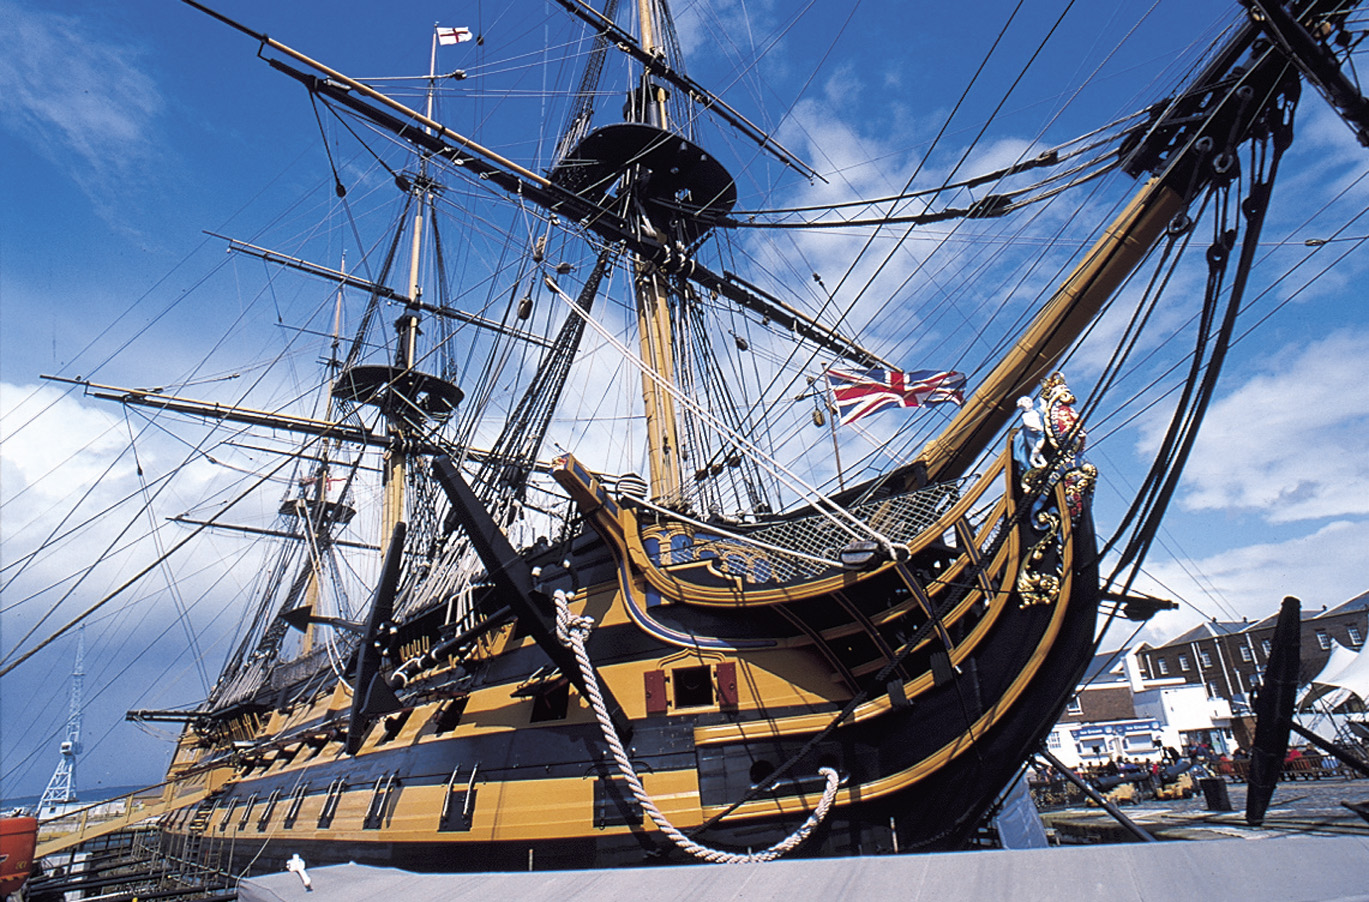 The Flagship of Maritime England